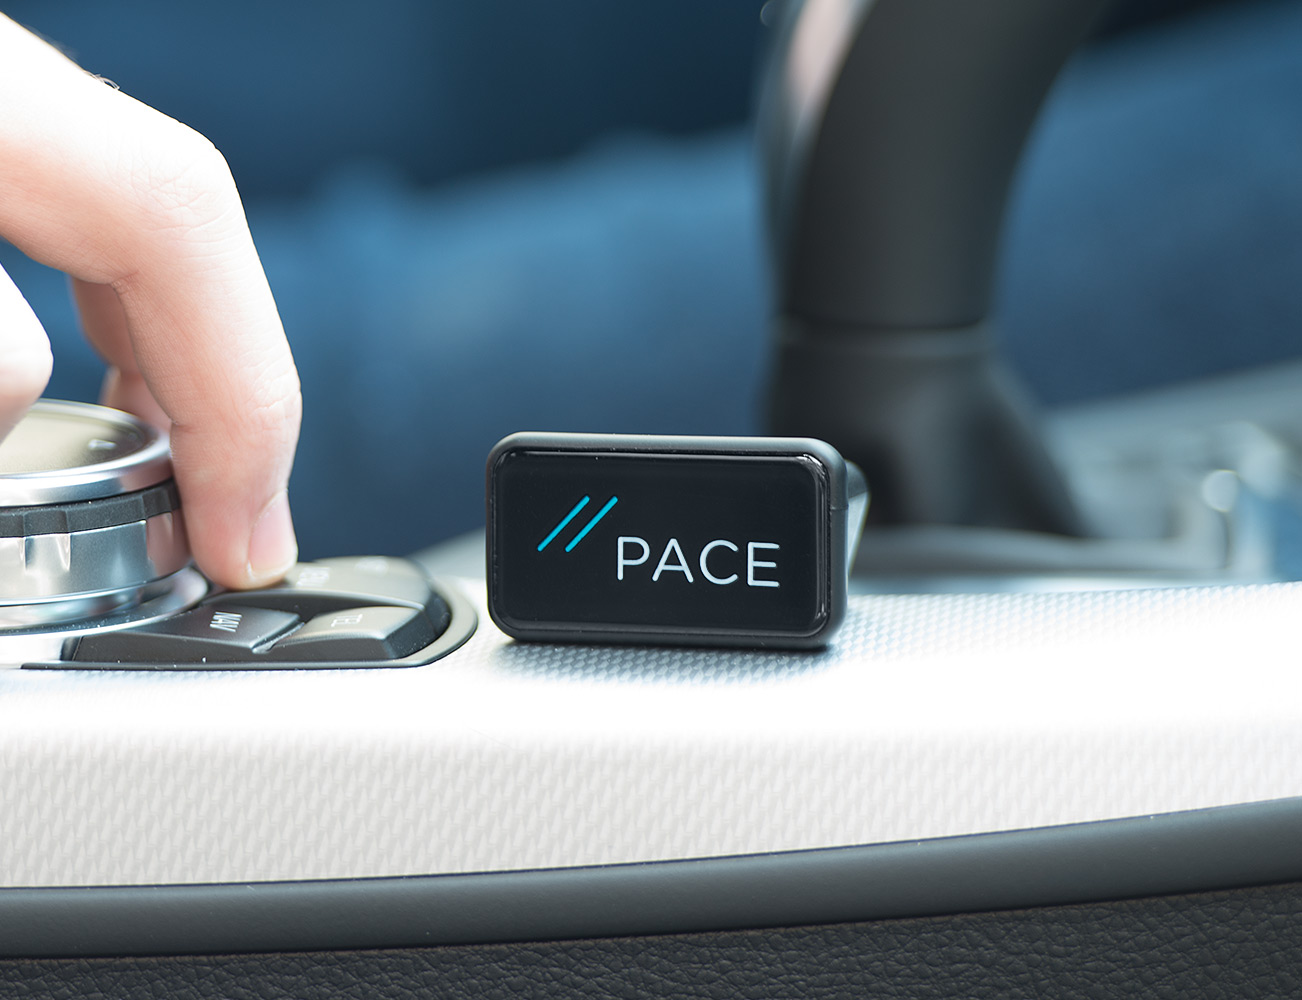 pace-link-turn-your-car-into-a-smartcar-02